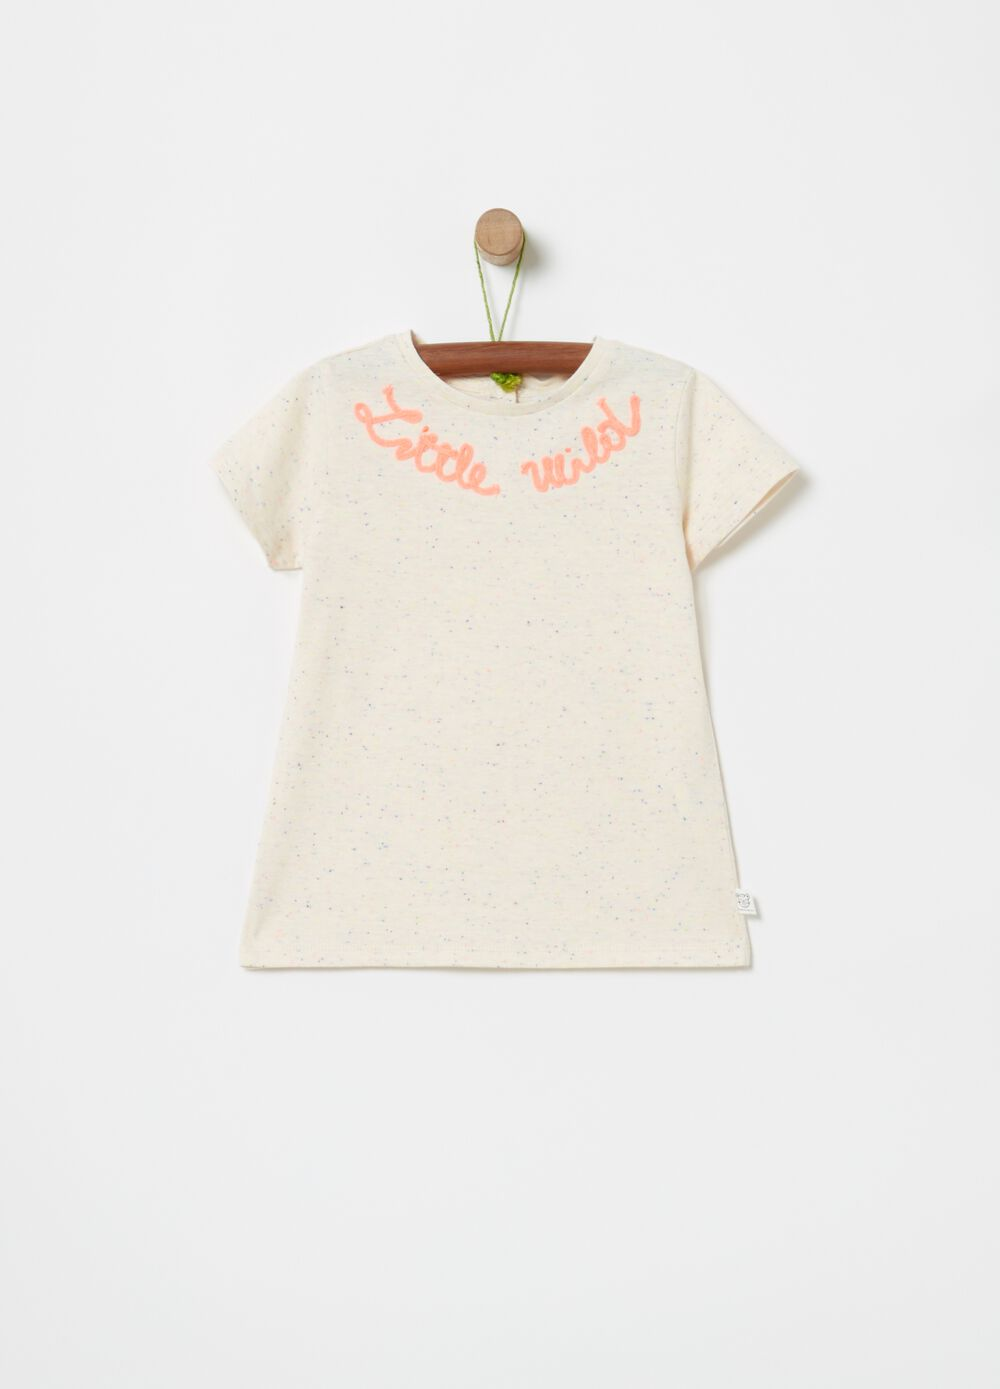 T-shirt in organic jersey nappy with embroidery